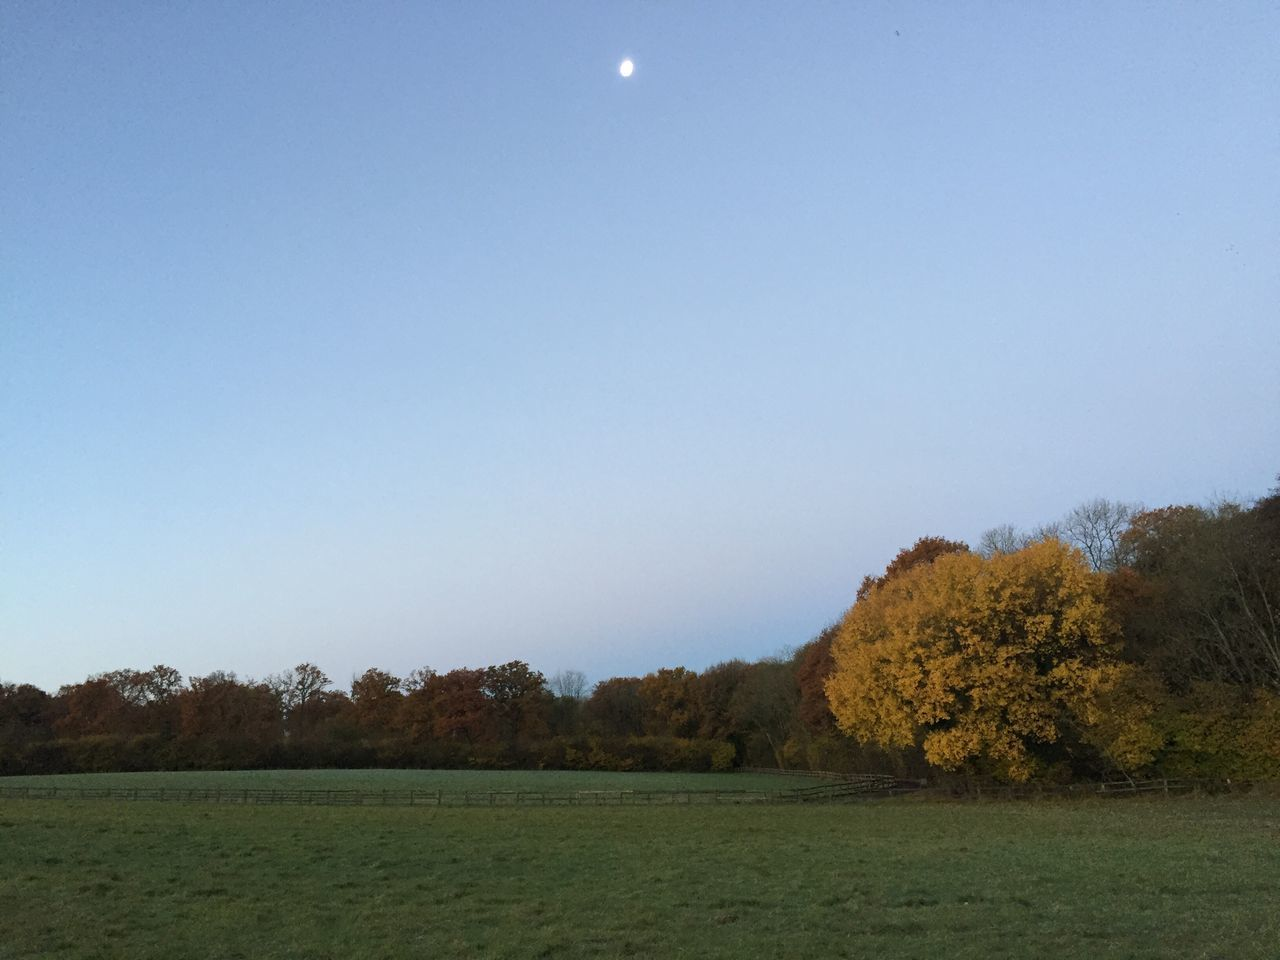 nature, tree, landscape, beauty in nature, clear sky, field, tranquility, copy space, tranquil scene, scenics, no people, outdoors, moon, day, sky, grass